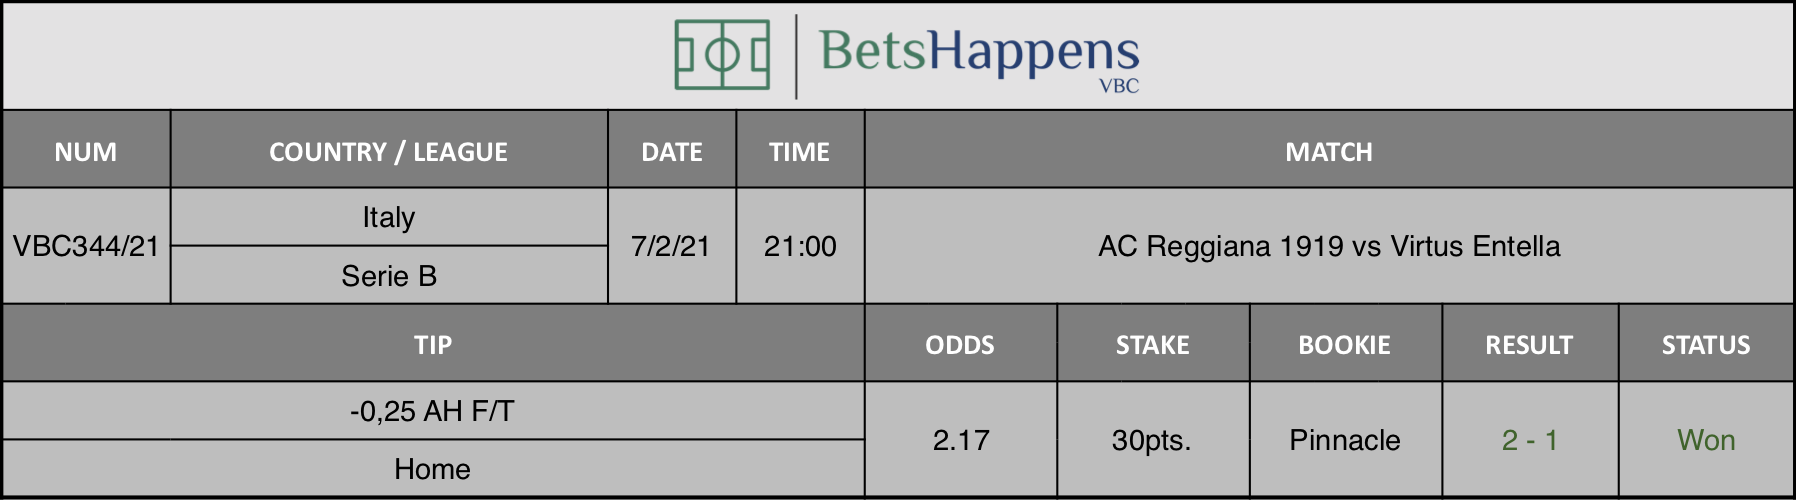 Results of our tip for the AC Reggiana 1919 vs Virtus Entella match where -0,25 AH F/T Home is recommended.